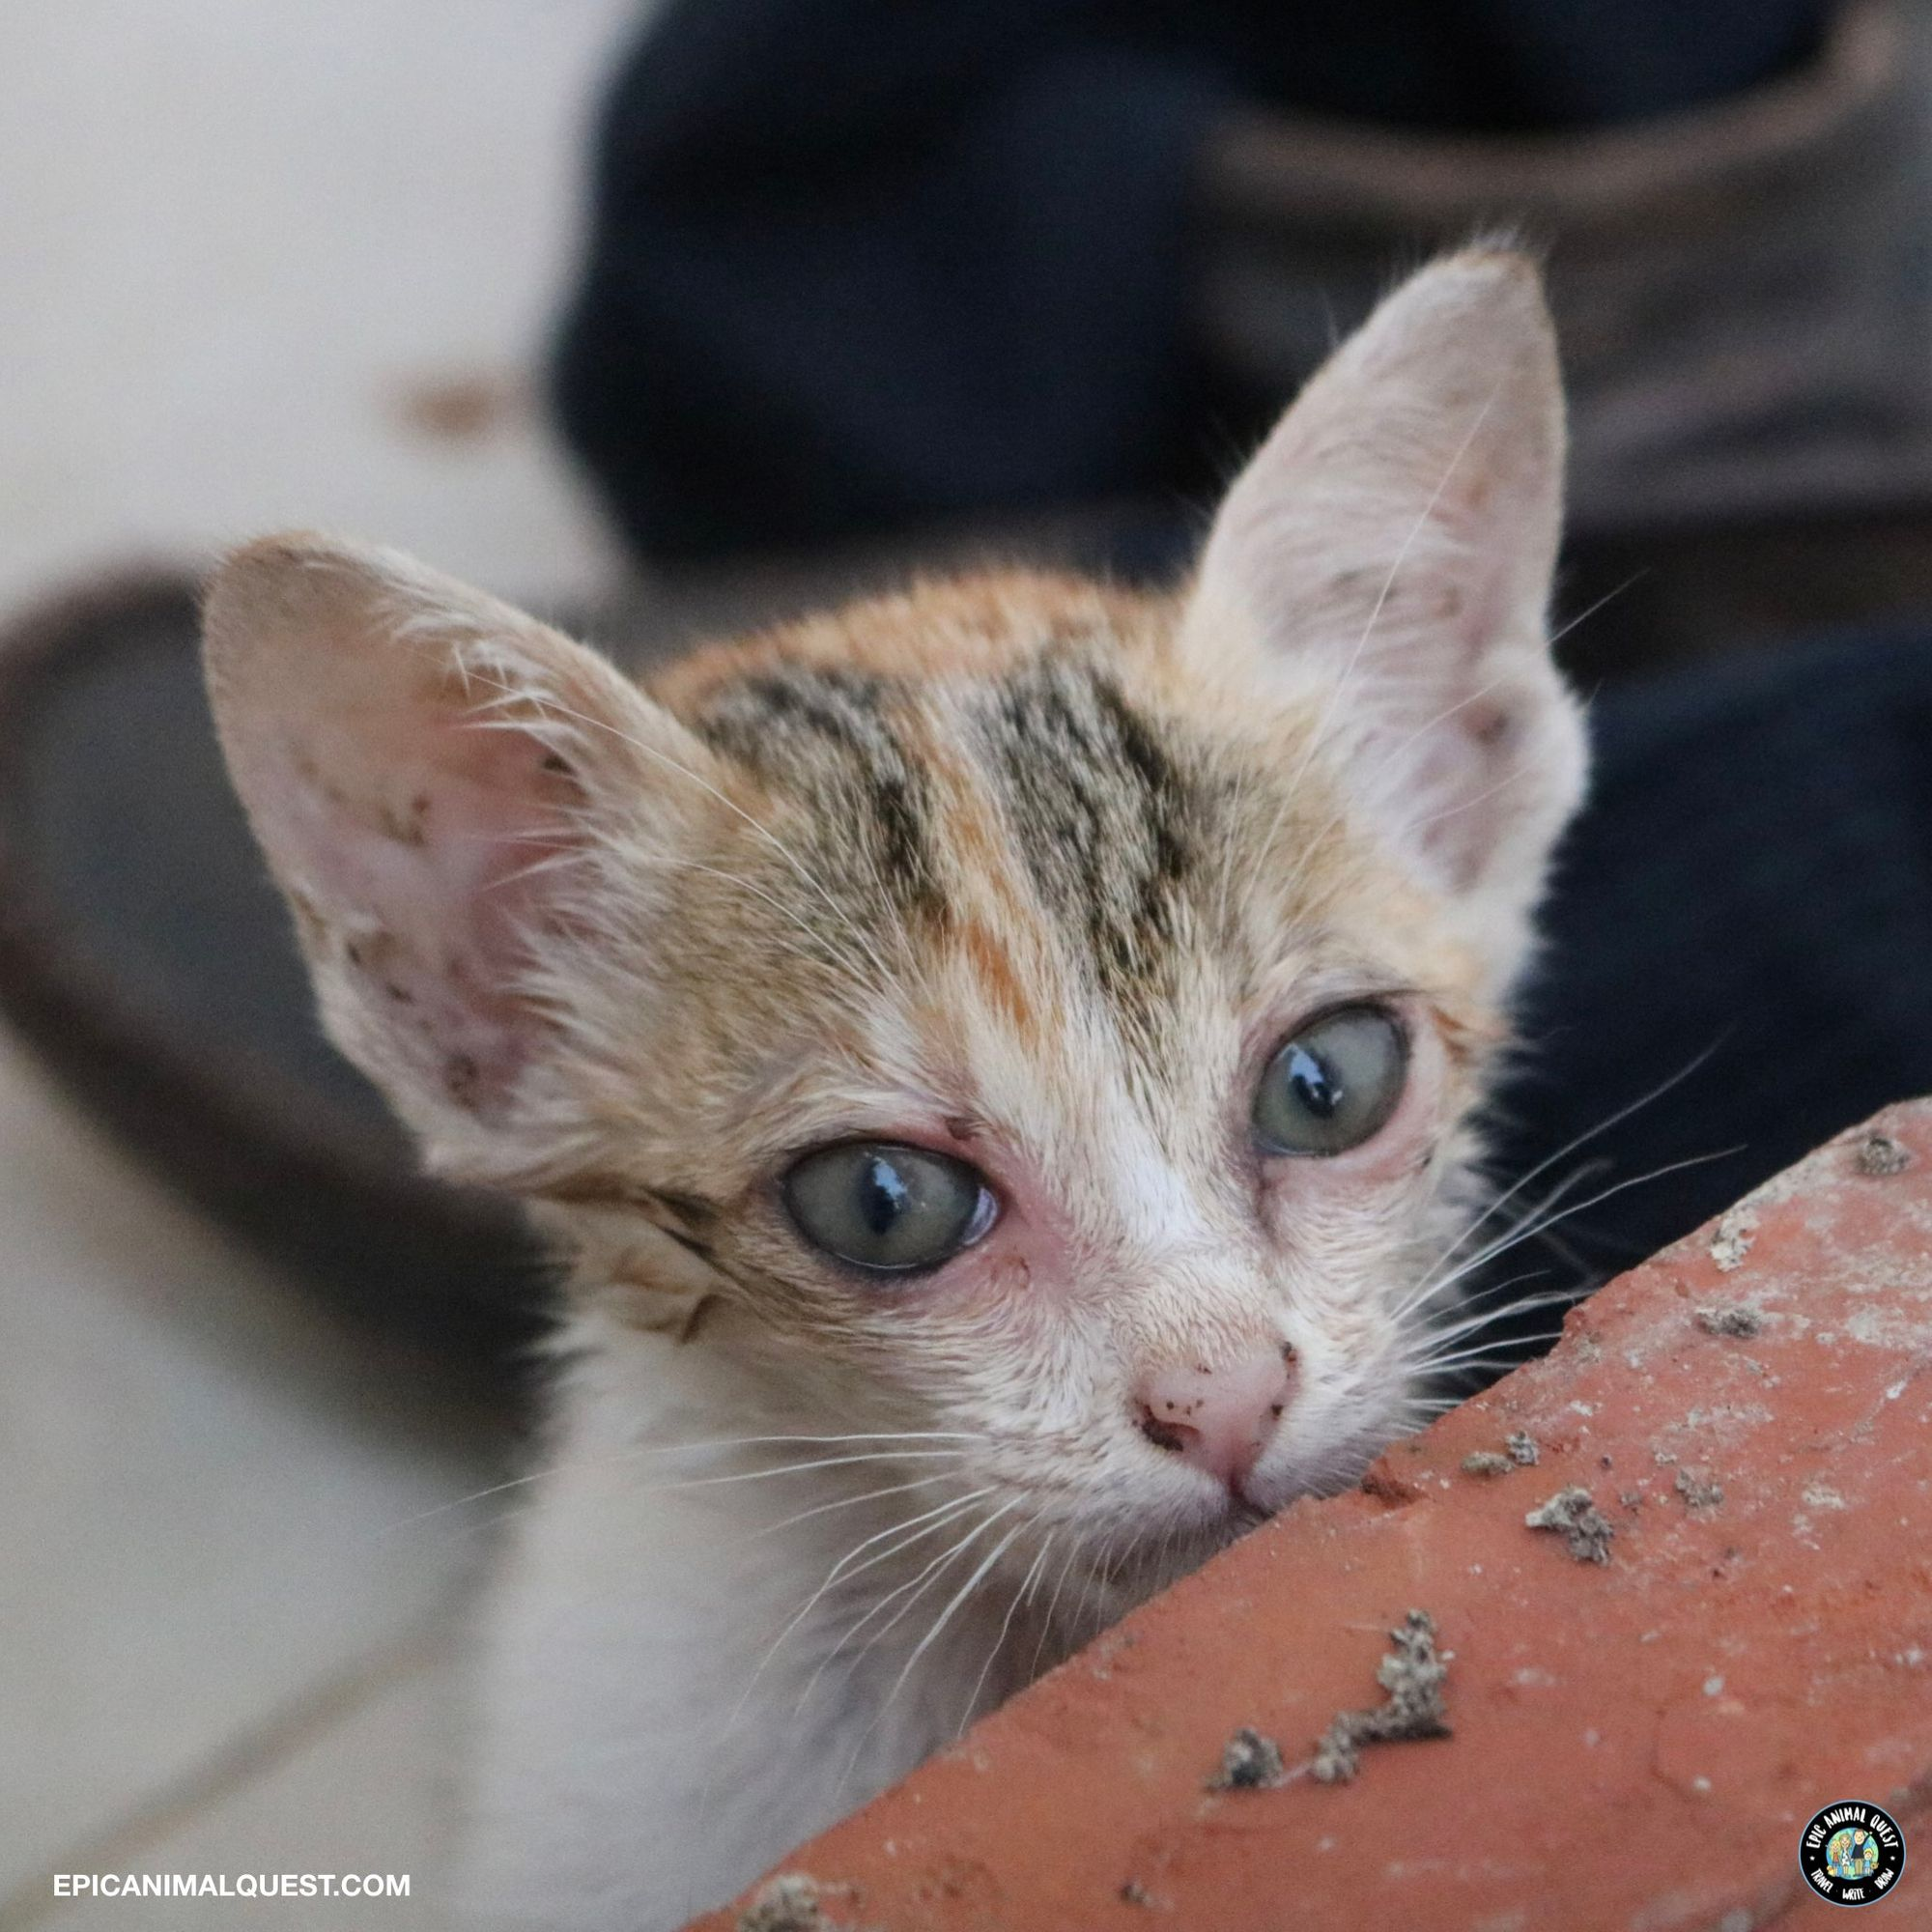 Kitten We Met During A Spay Neuter Event In Siem Reap Cambodia In 2020 Animal Activism Kitten Neuter